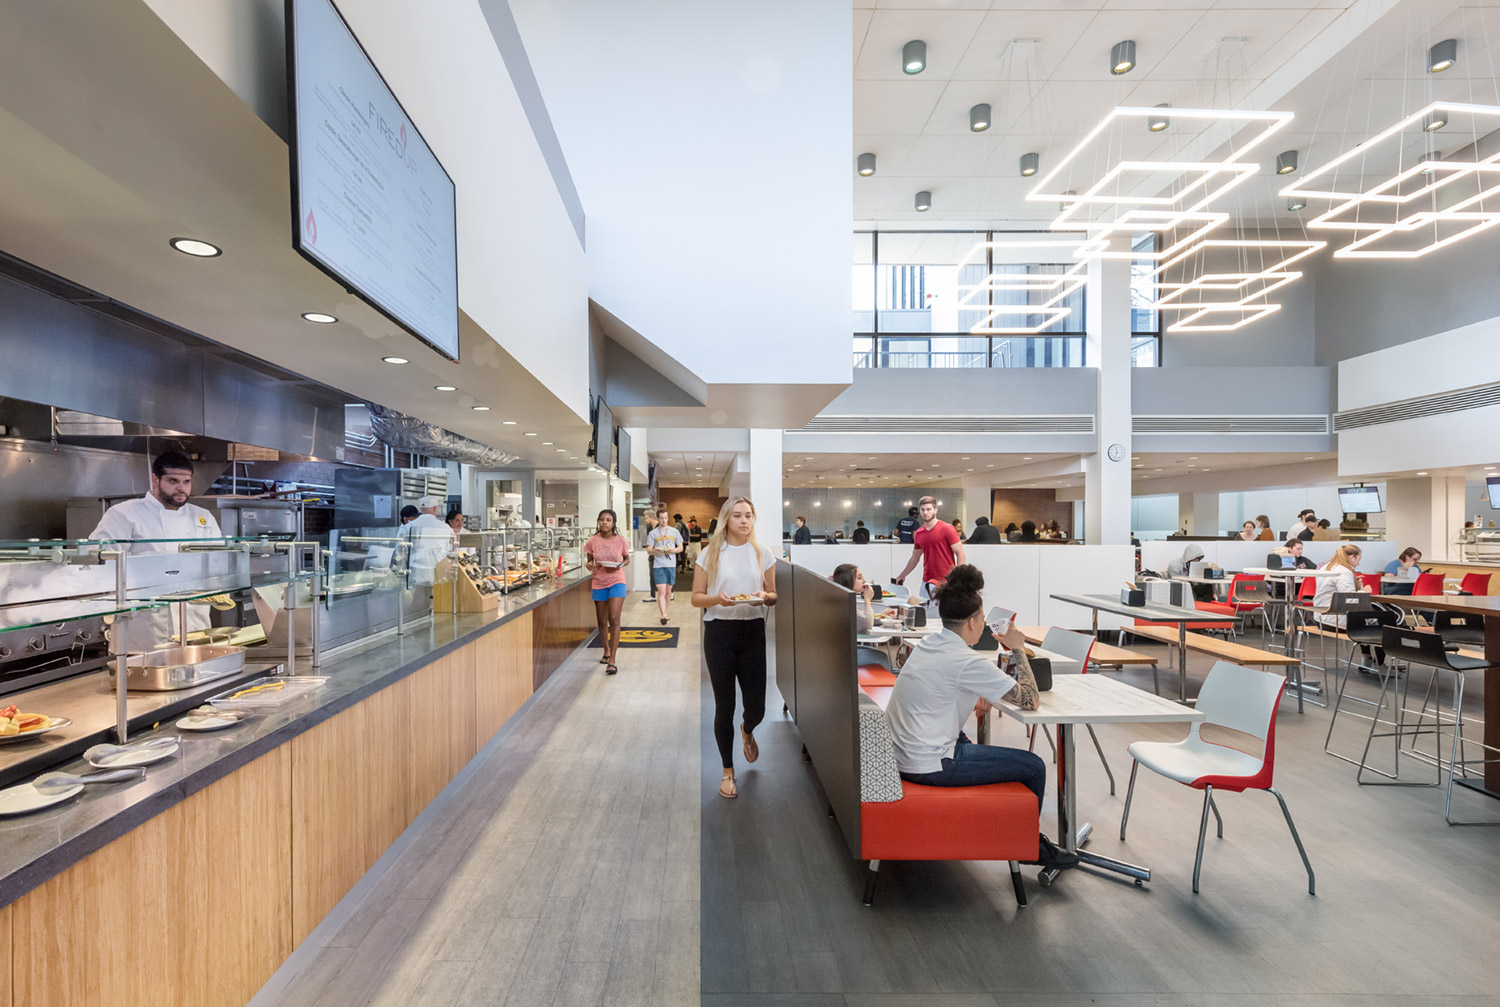 Reconfigured servery with new dining areas within the atrium